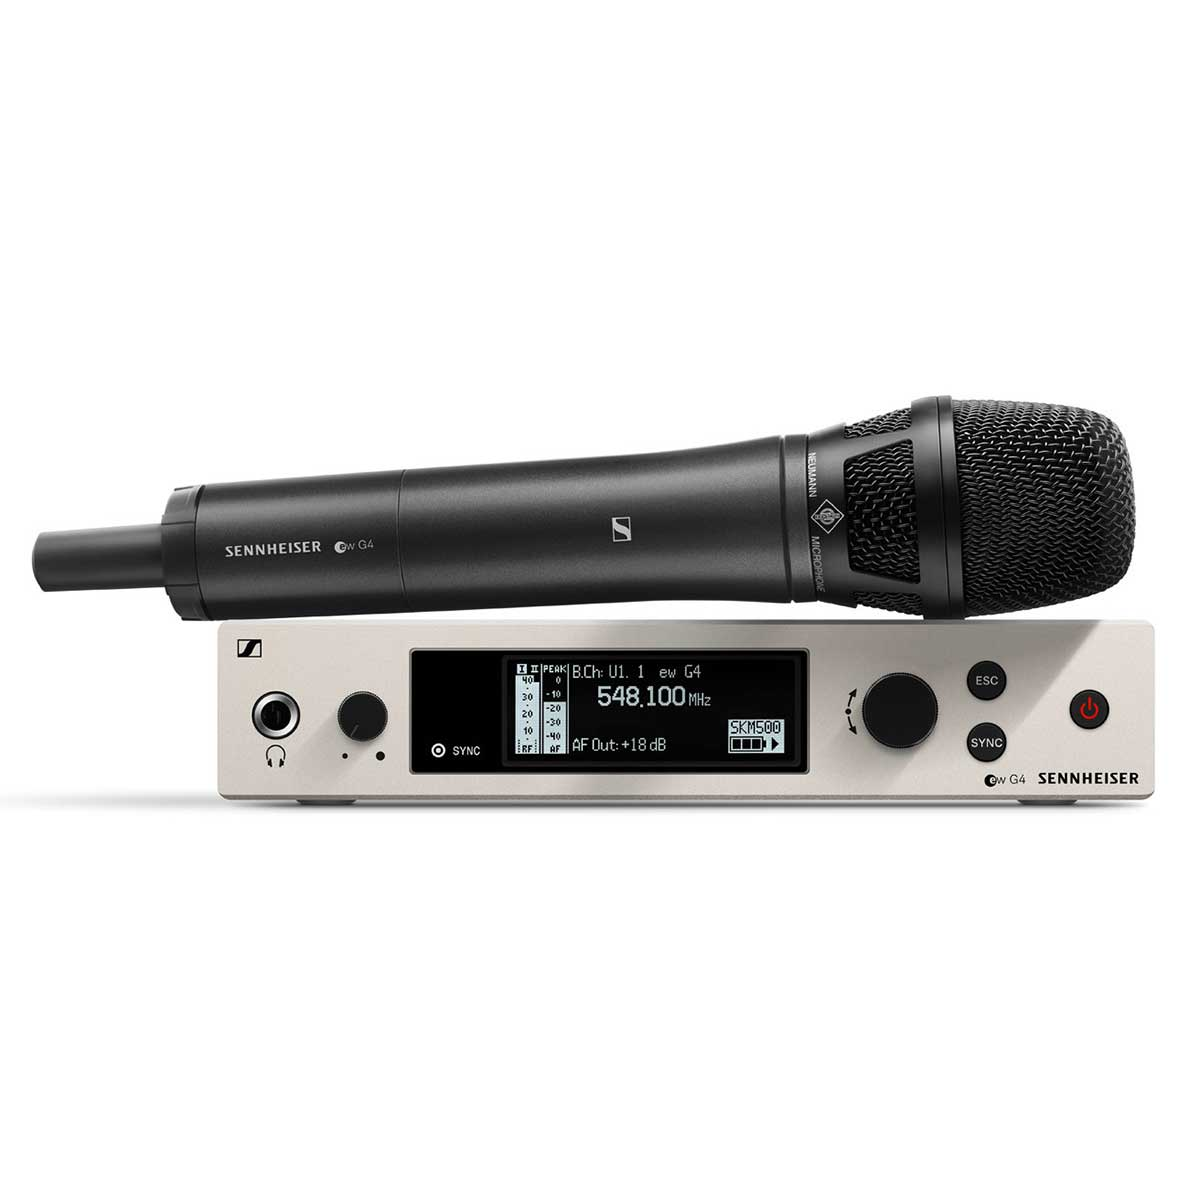 Sennheiser ew 500 G4-KK205-AS Wireless Vocal Set